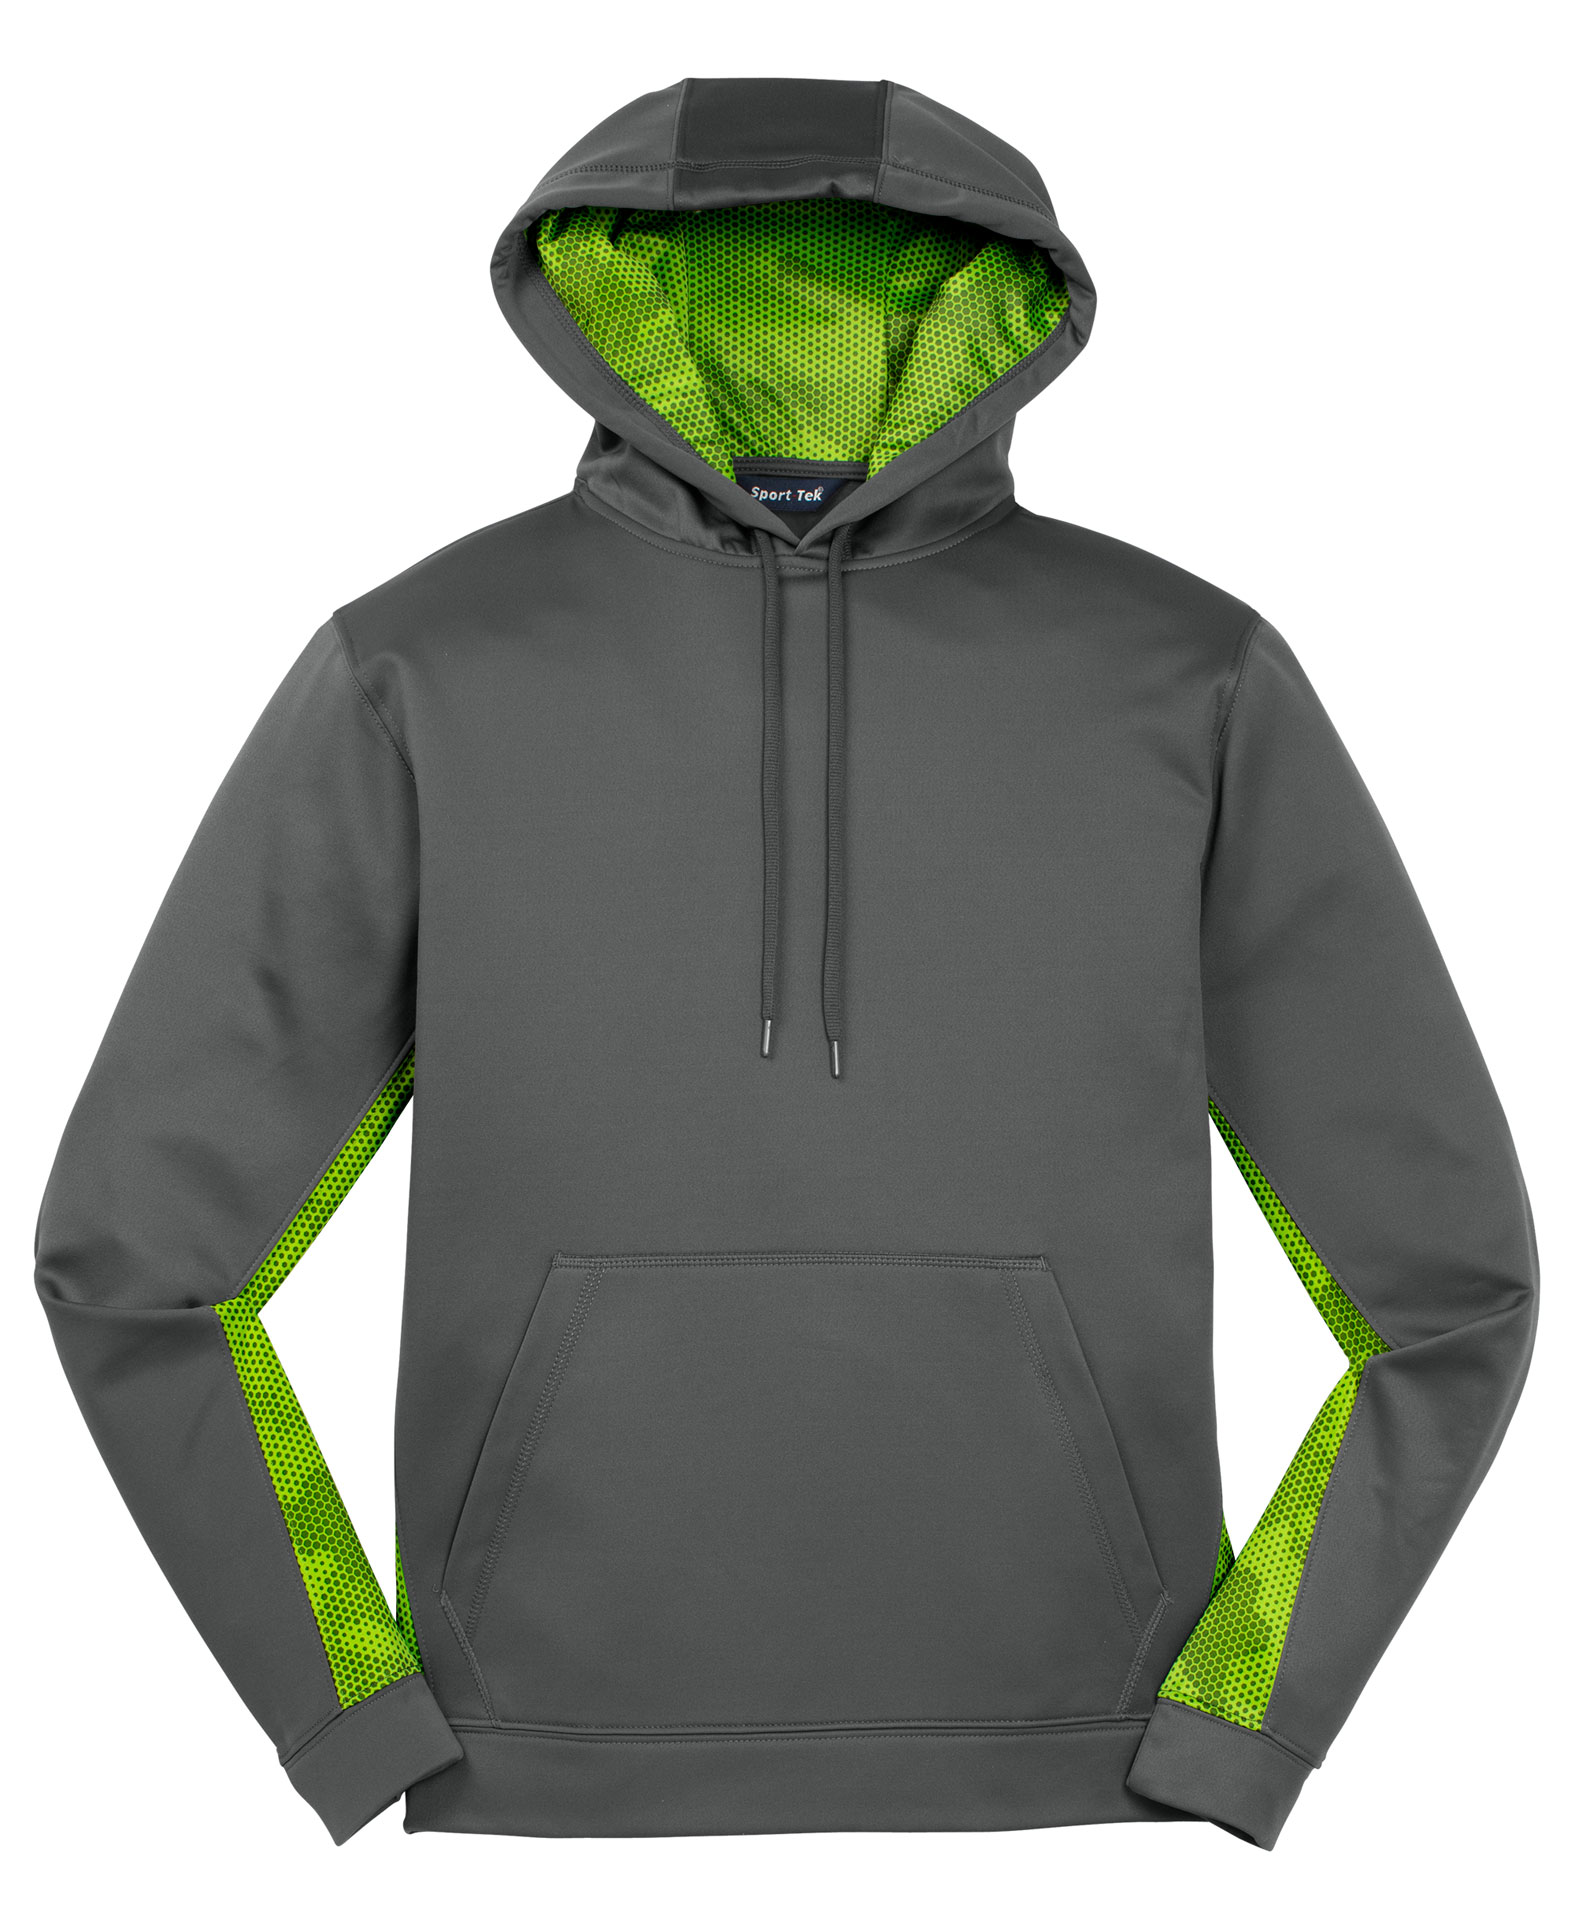 Adult CamoHex Fleece Colorblocked Hooded Pullover